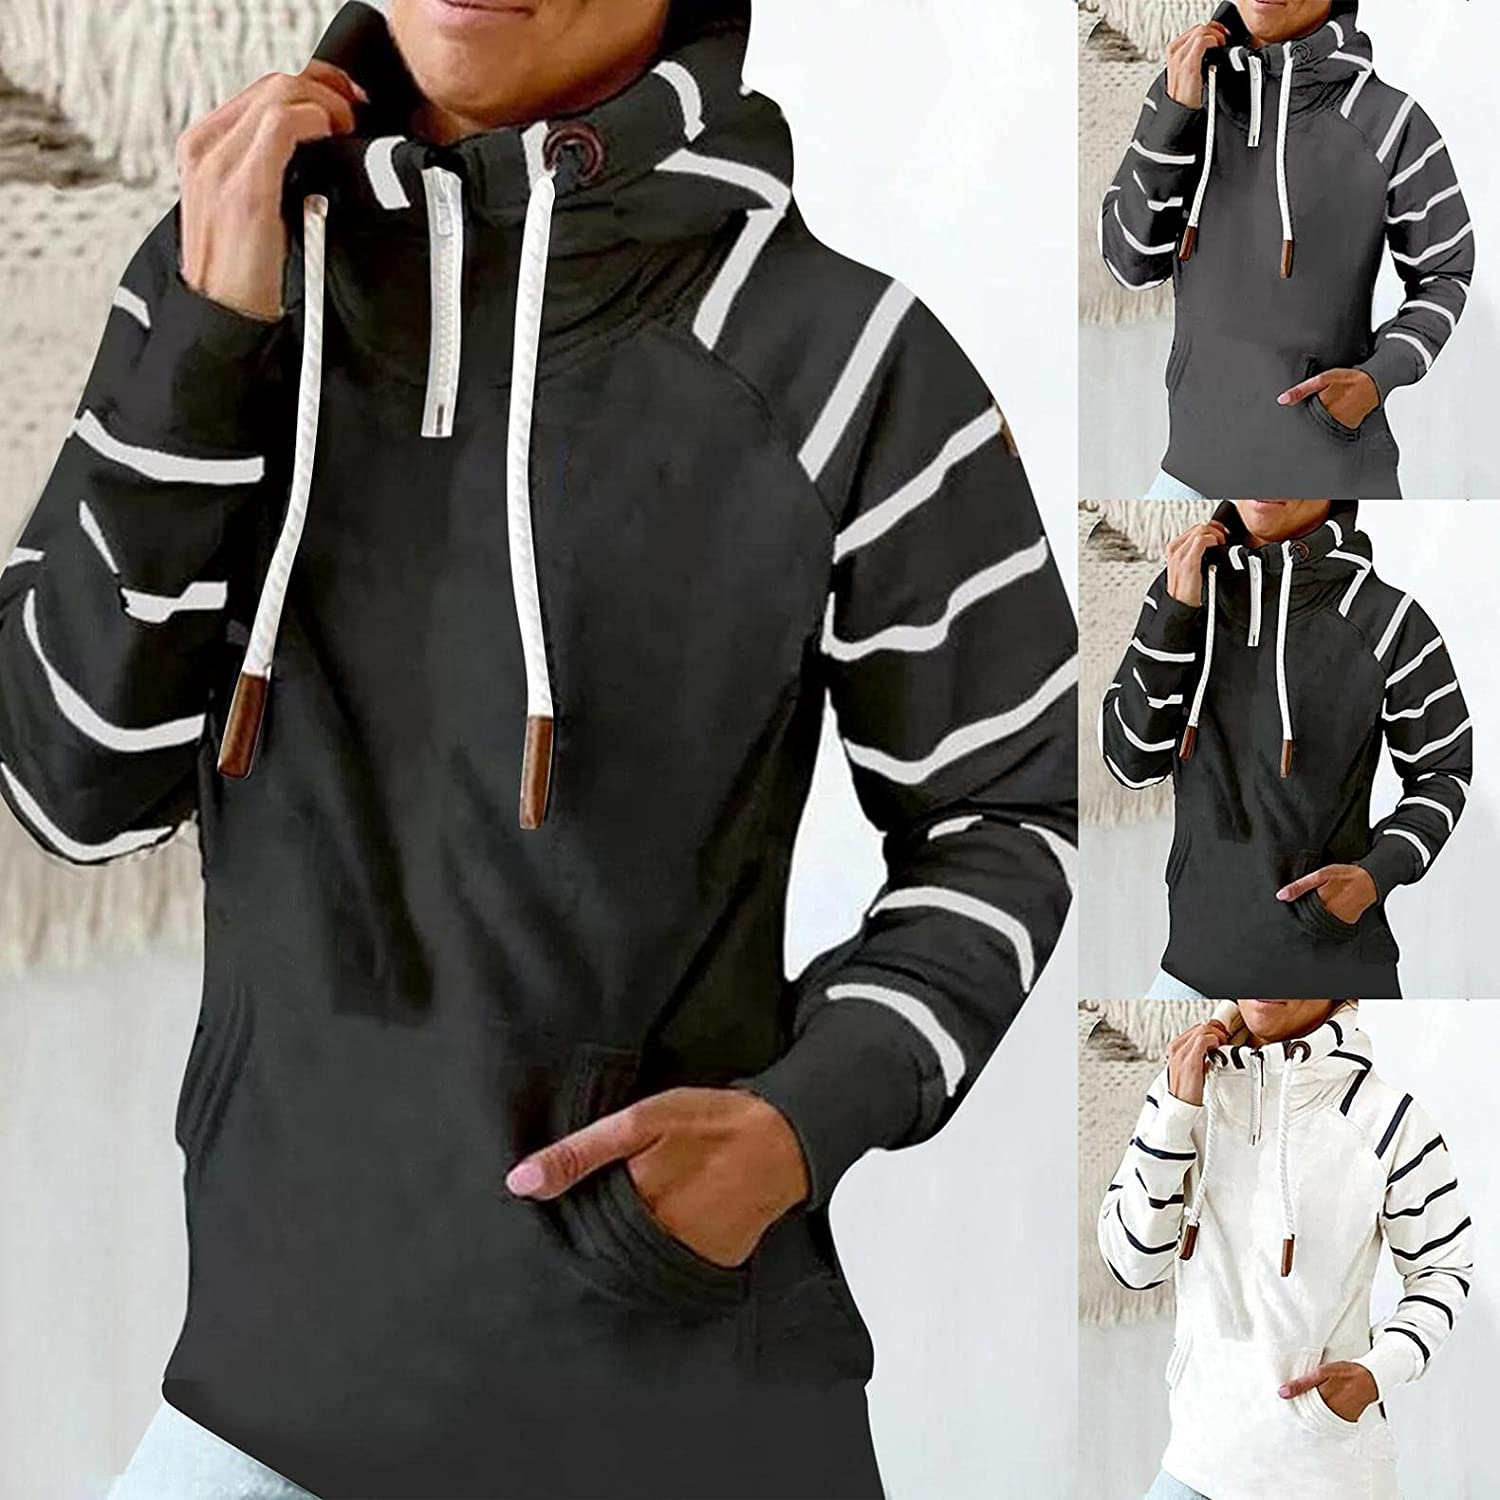 Gibobby Hooded Sweatshirts for Women Warm Winter Casual Long Sleeve Shirt Pocket Turtle Neck Hoodies Drawstring Pullover